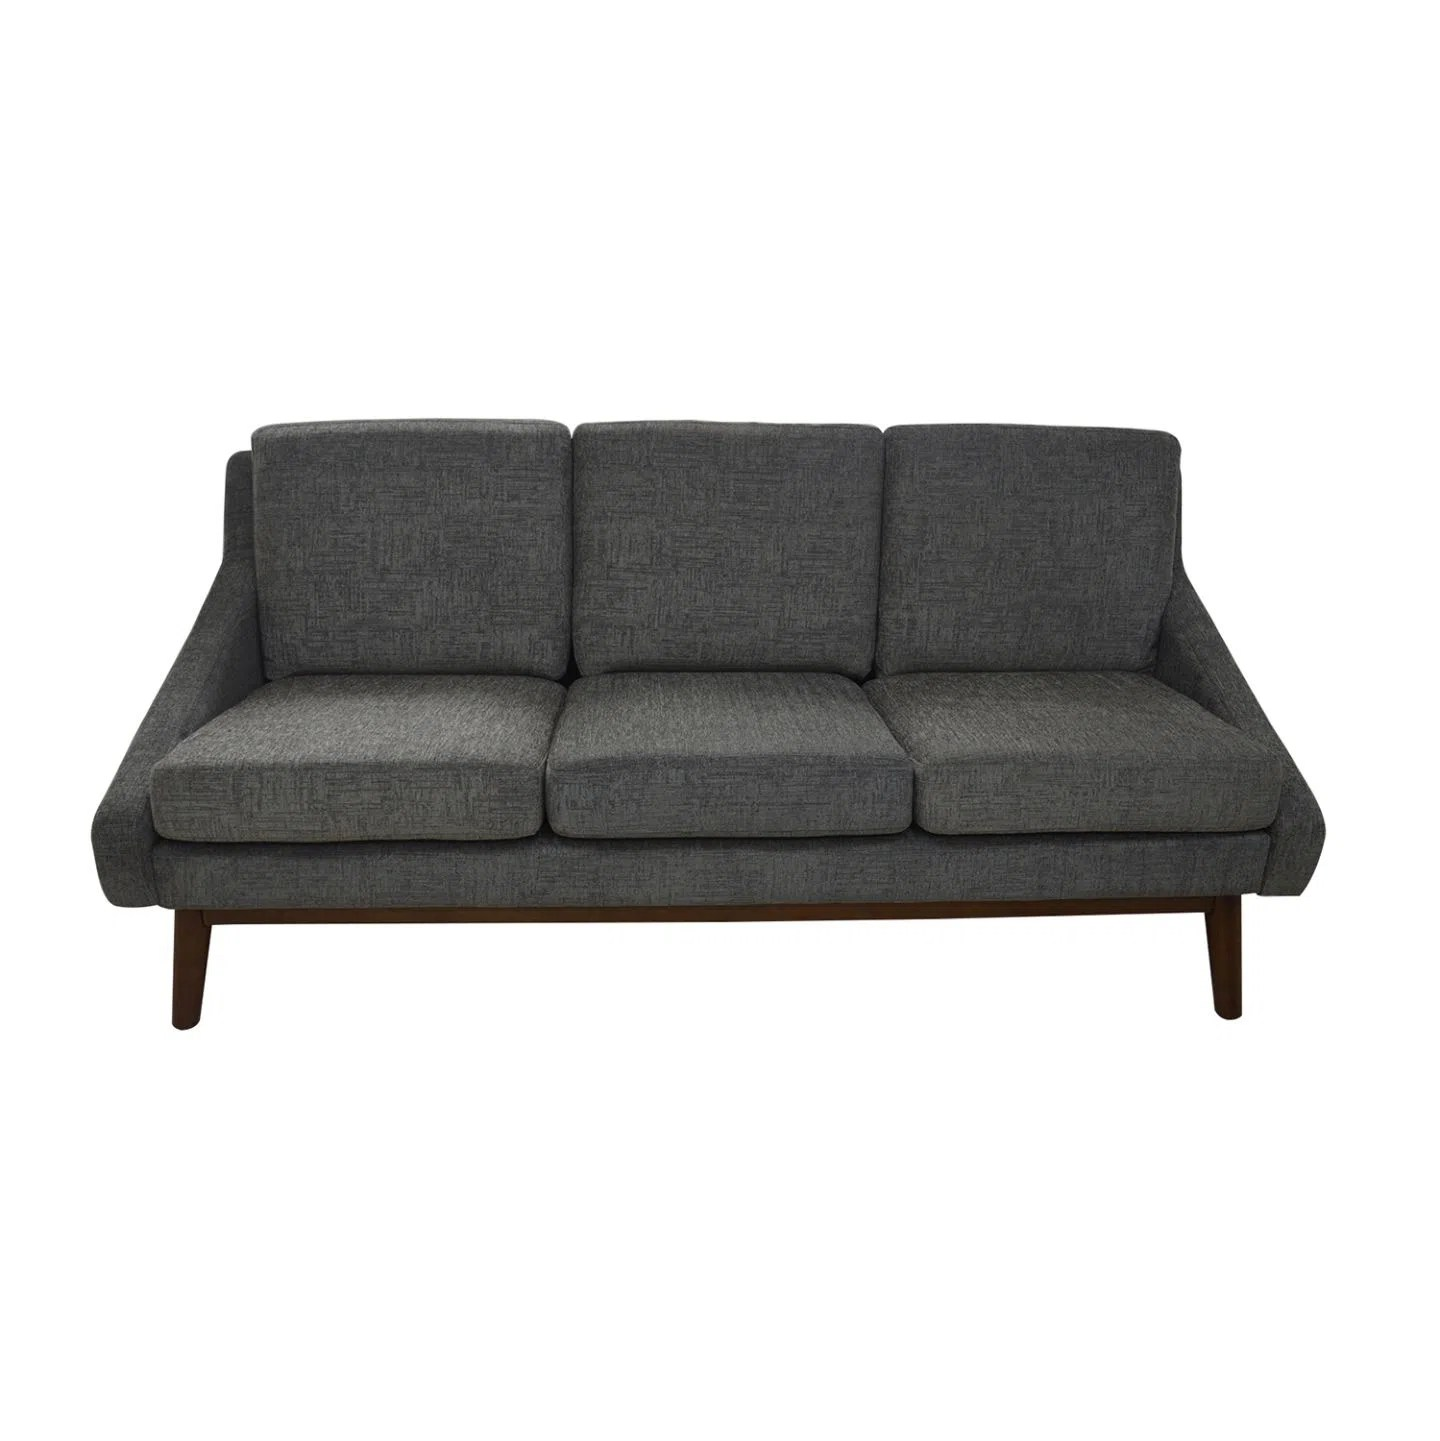 Davenport Sofa In Coffee Finish Legs Manufacturers Made In